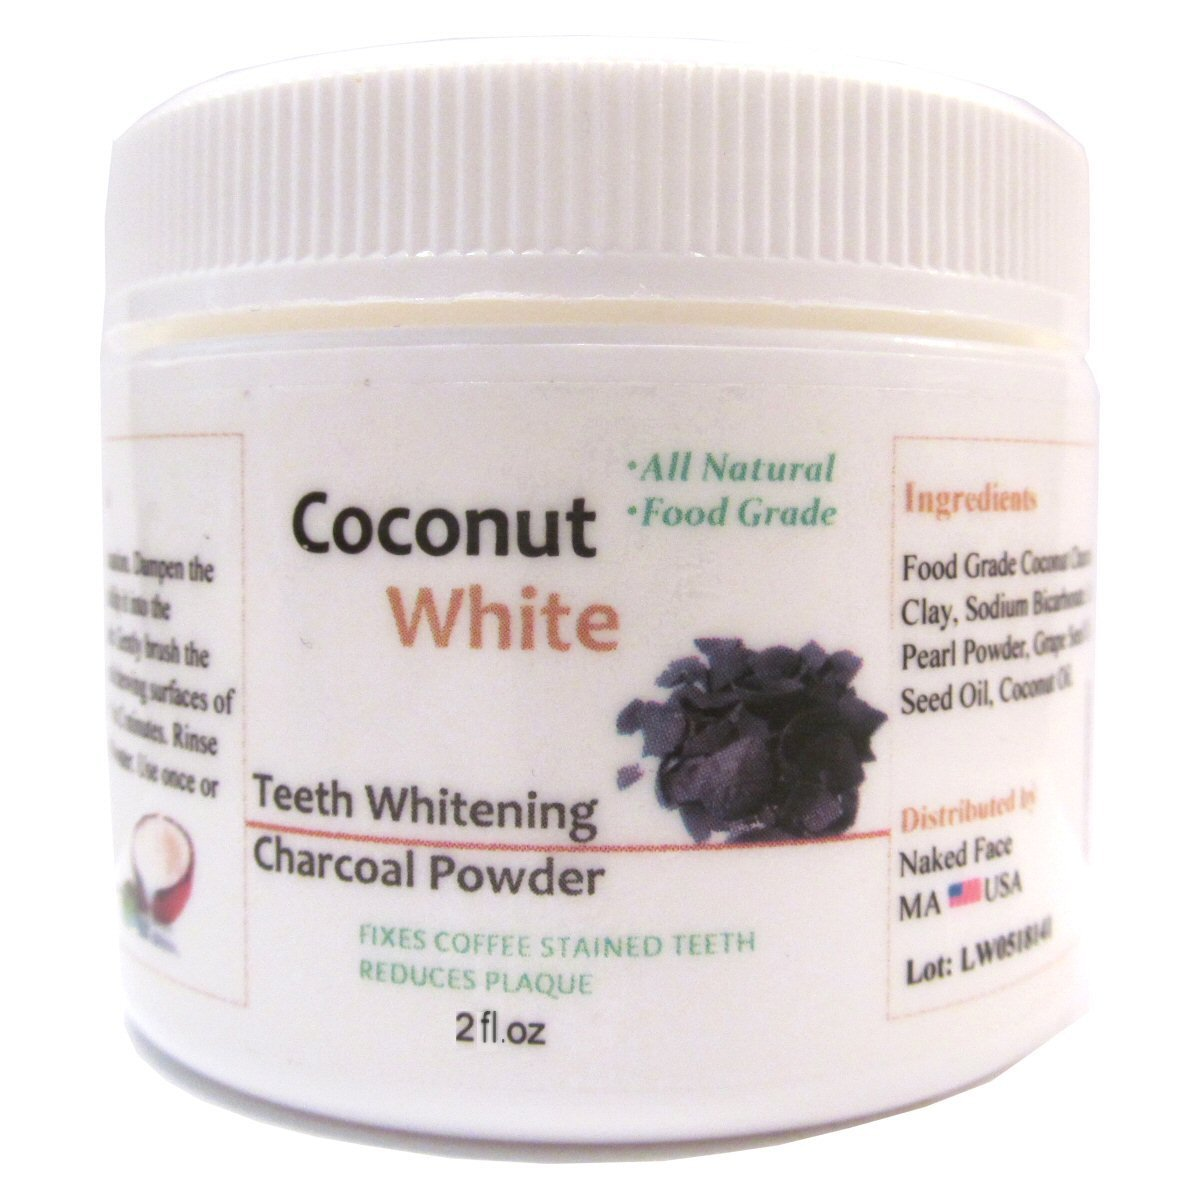 CoconutWhite Natural Teeth Whitening Charcoal Powder with Organic Coconut Activated Charcoal for Healthy Whiter Teeth